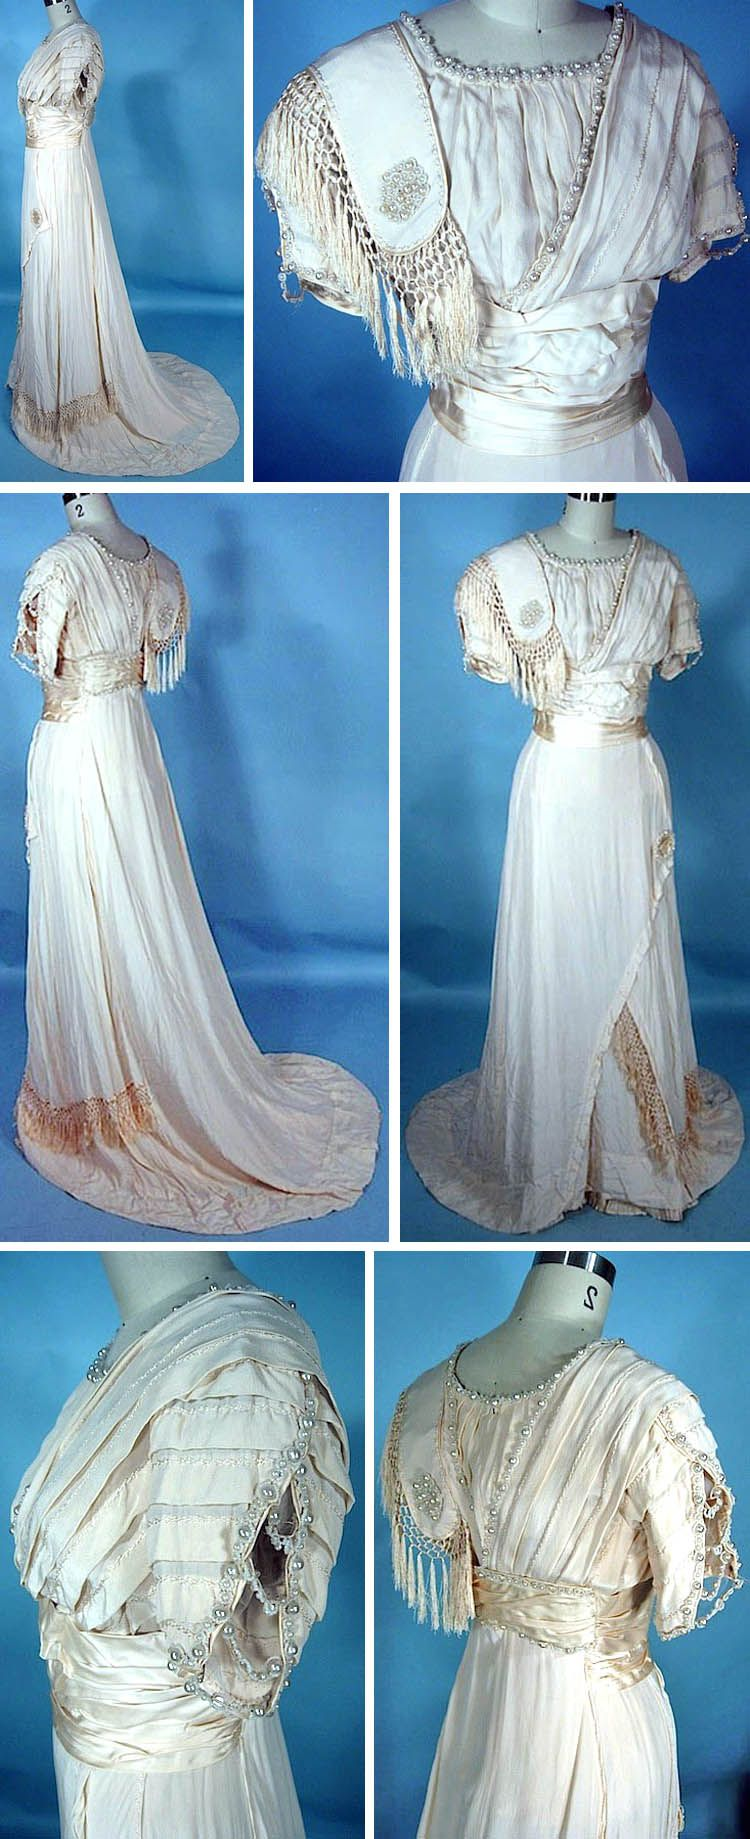 Wedding gown ca ivory silk crepe with fringe and pearl trim